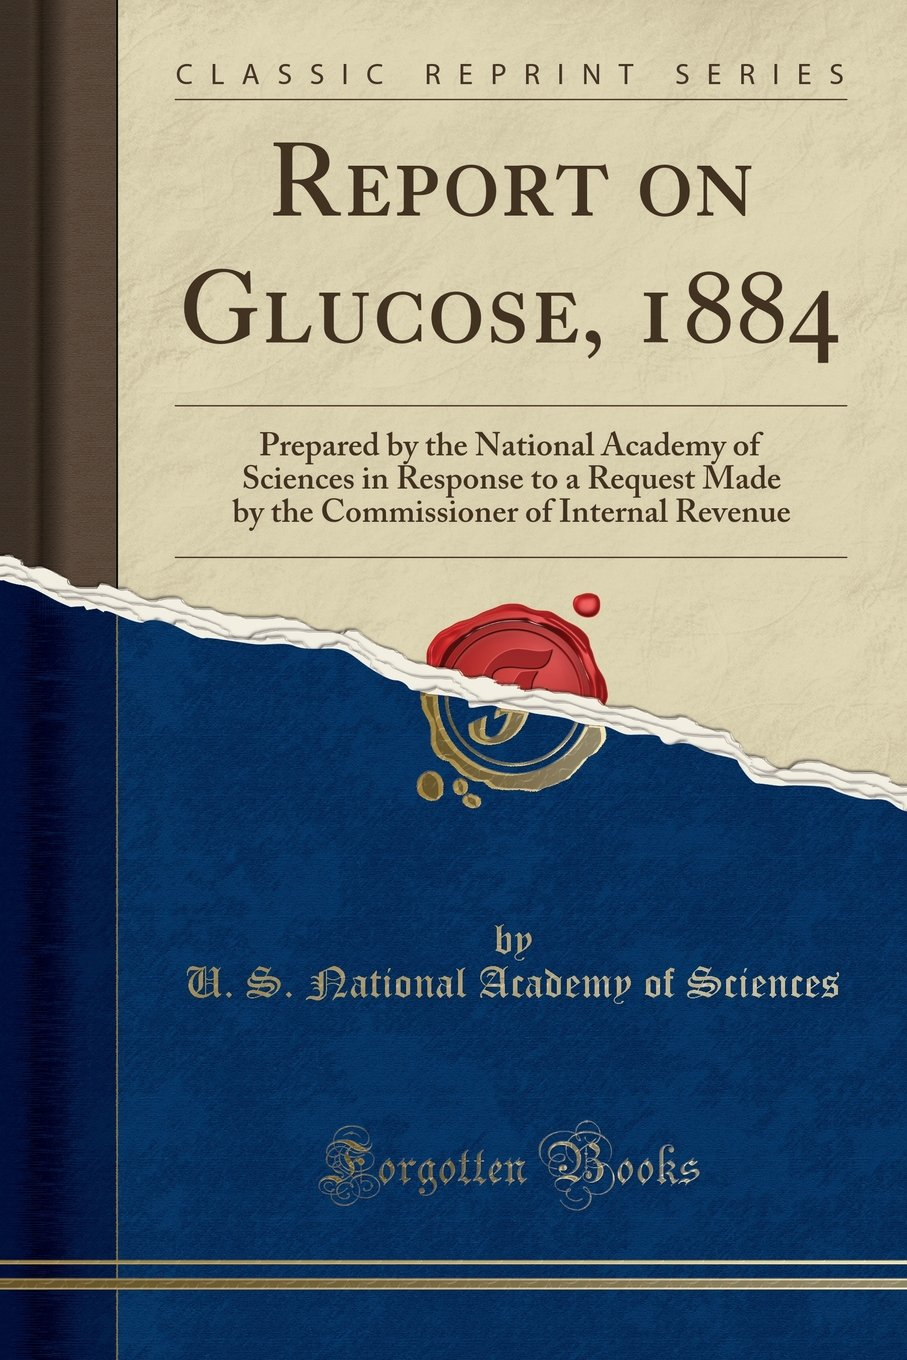 Download Report on Glucose, 1884: Prepared by the National Academy of Sciences in Response to a Request Made by the Commissioner of Internal Revenue (Classic Reprint) pdf